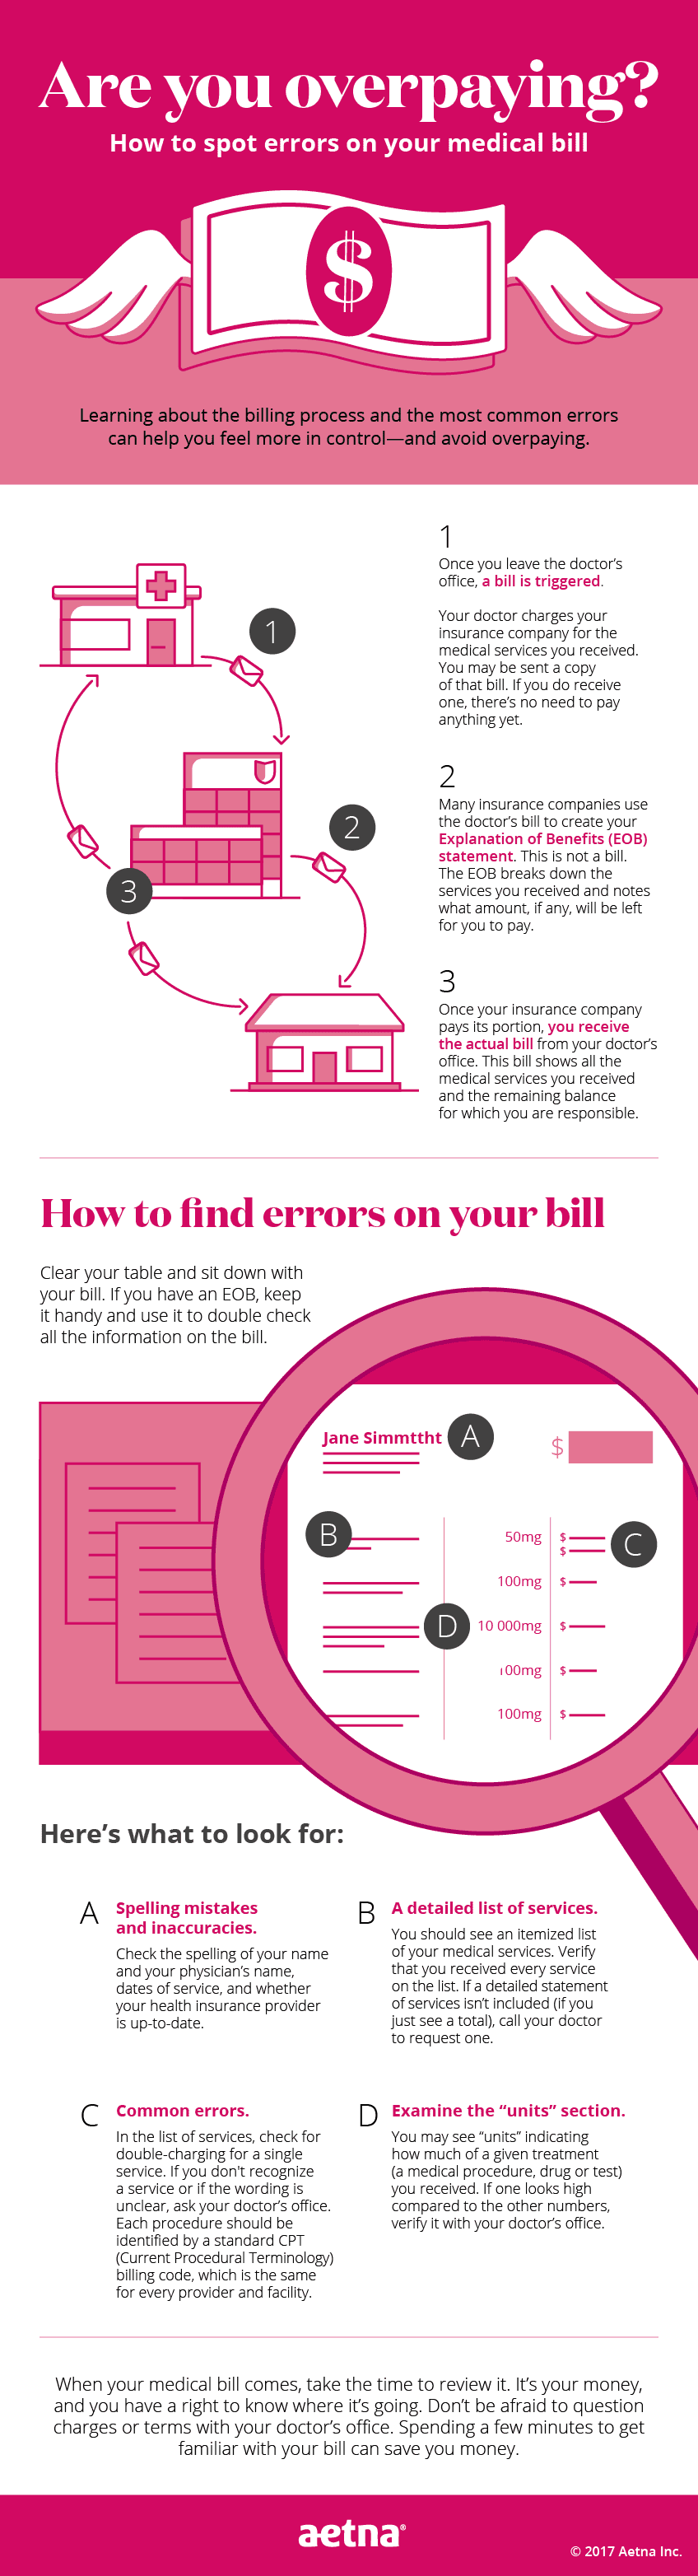 How To Spot Errors On Your Medical Bill #infographic